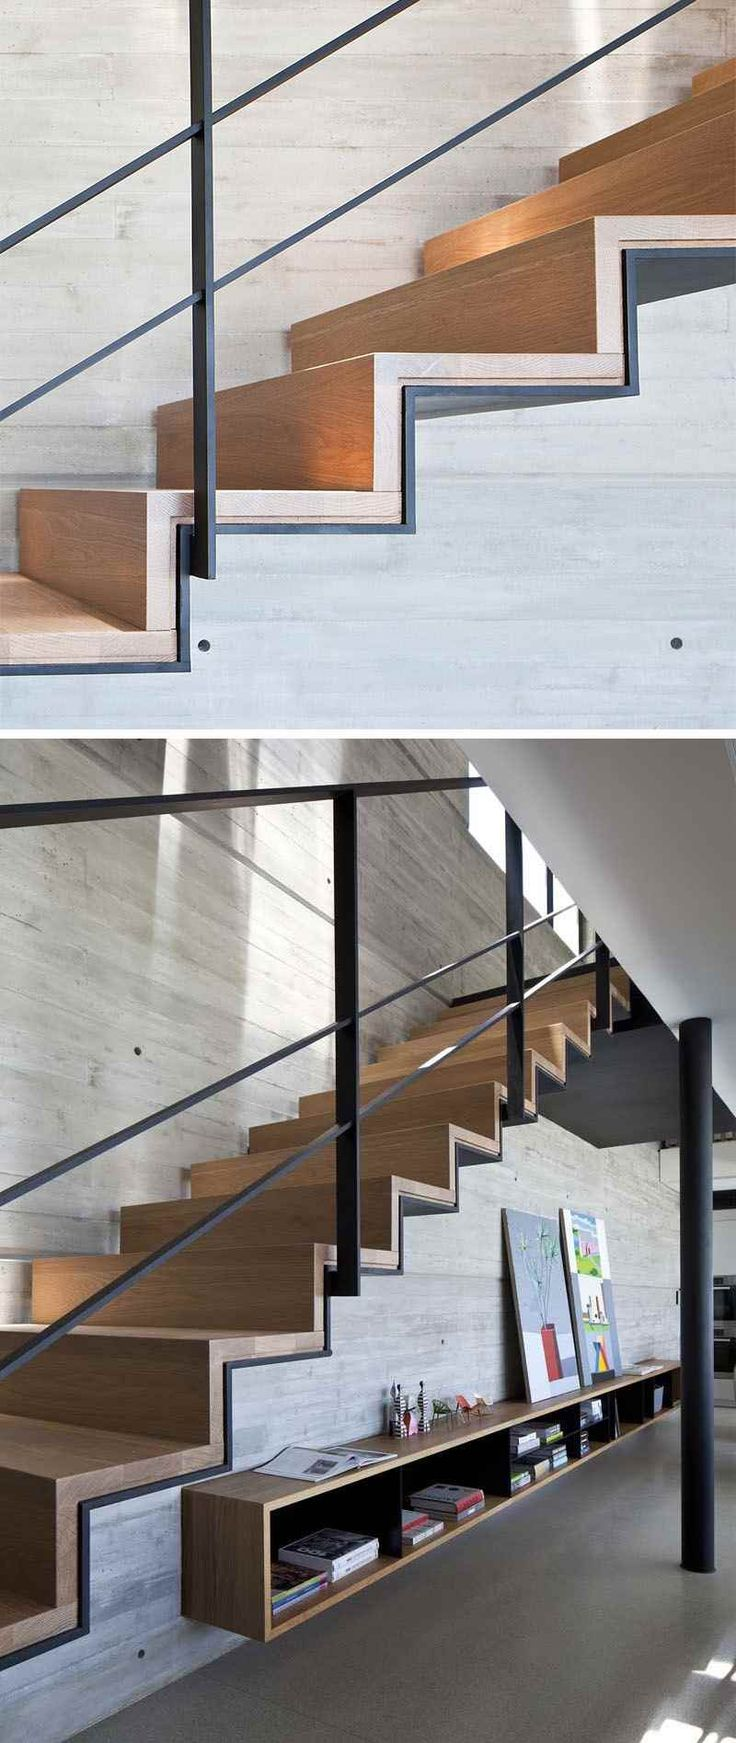 Escalier Beton Design Of Best 25 Escalier En Beton Ideas Only On Pinterest Escaliers En B Ton Escalier Ext Rieur